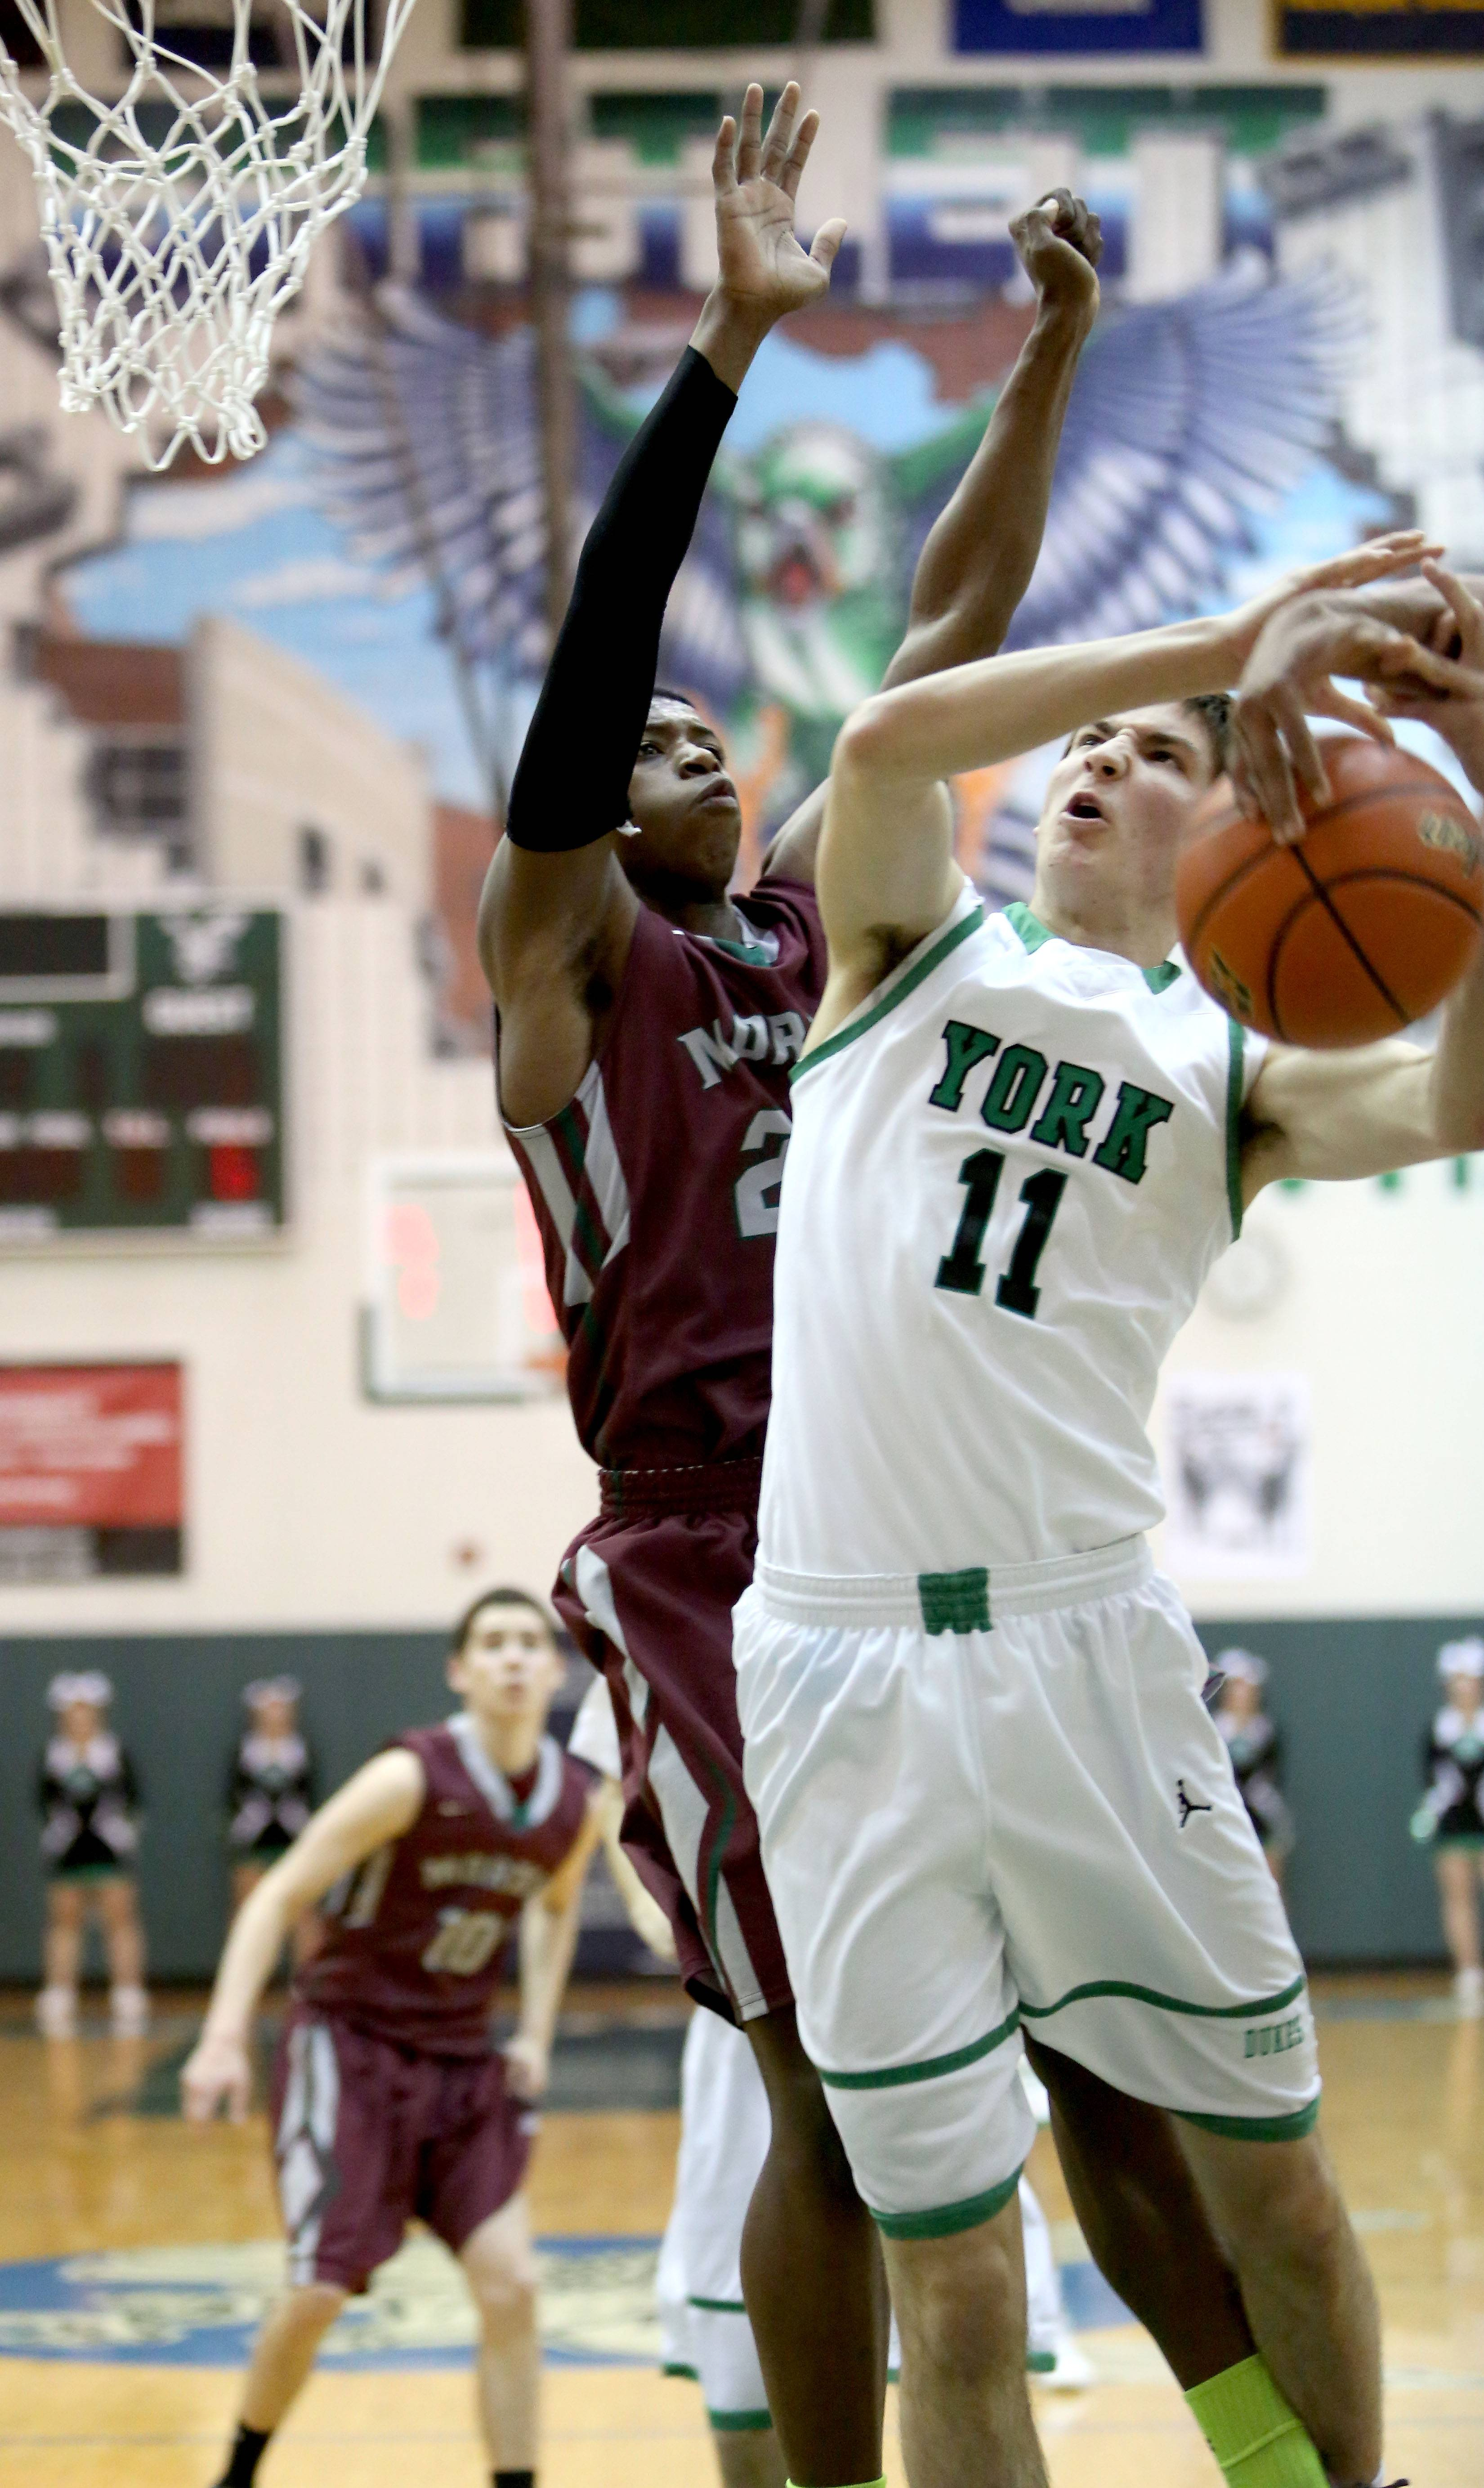 York's Brent Gasparich loses the ball.